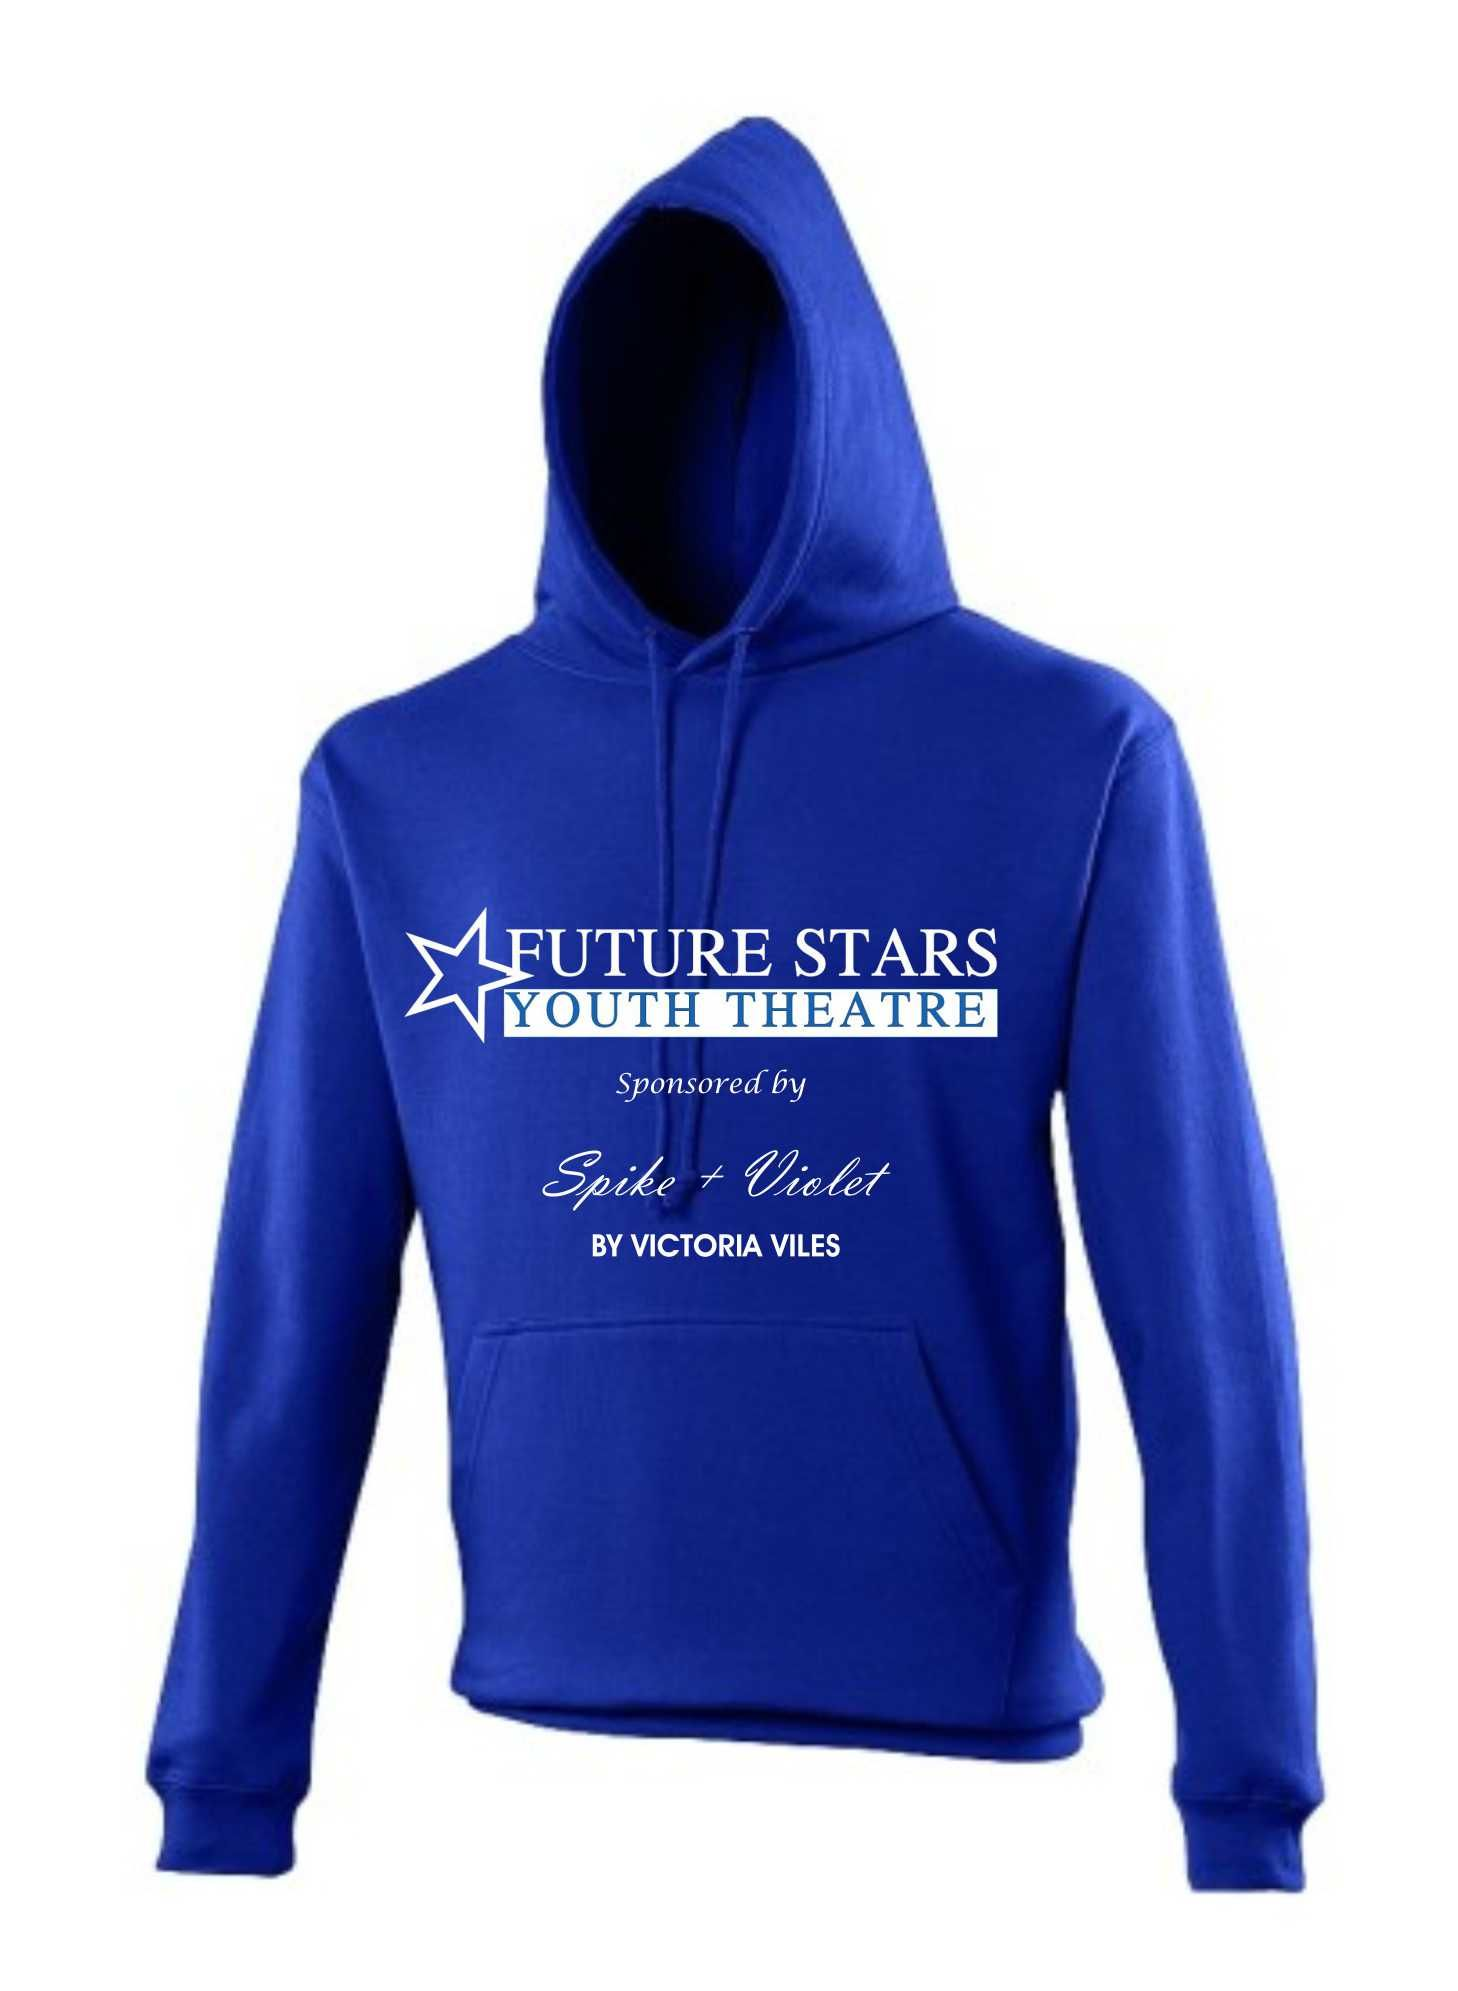 Future Stars Youth Theatre – Hoodie (Adults)